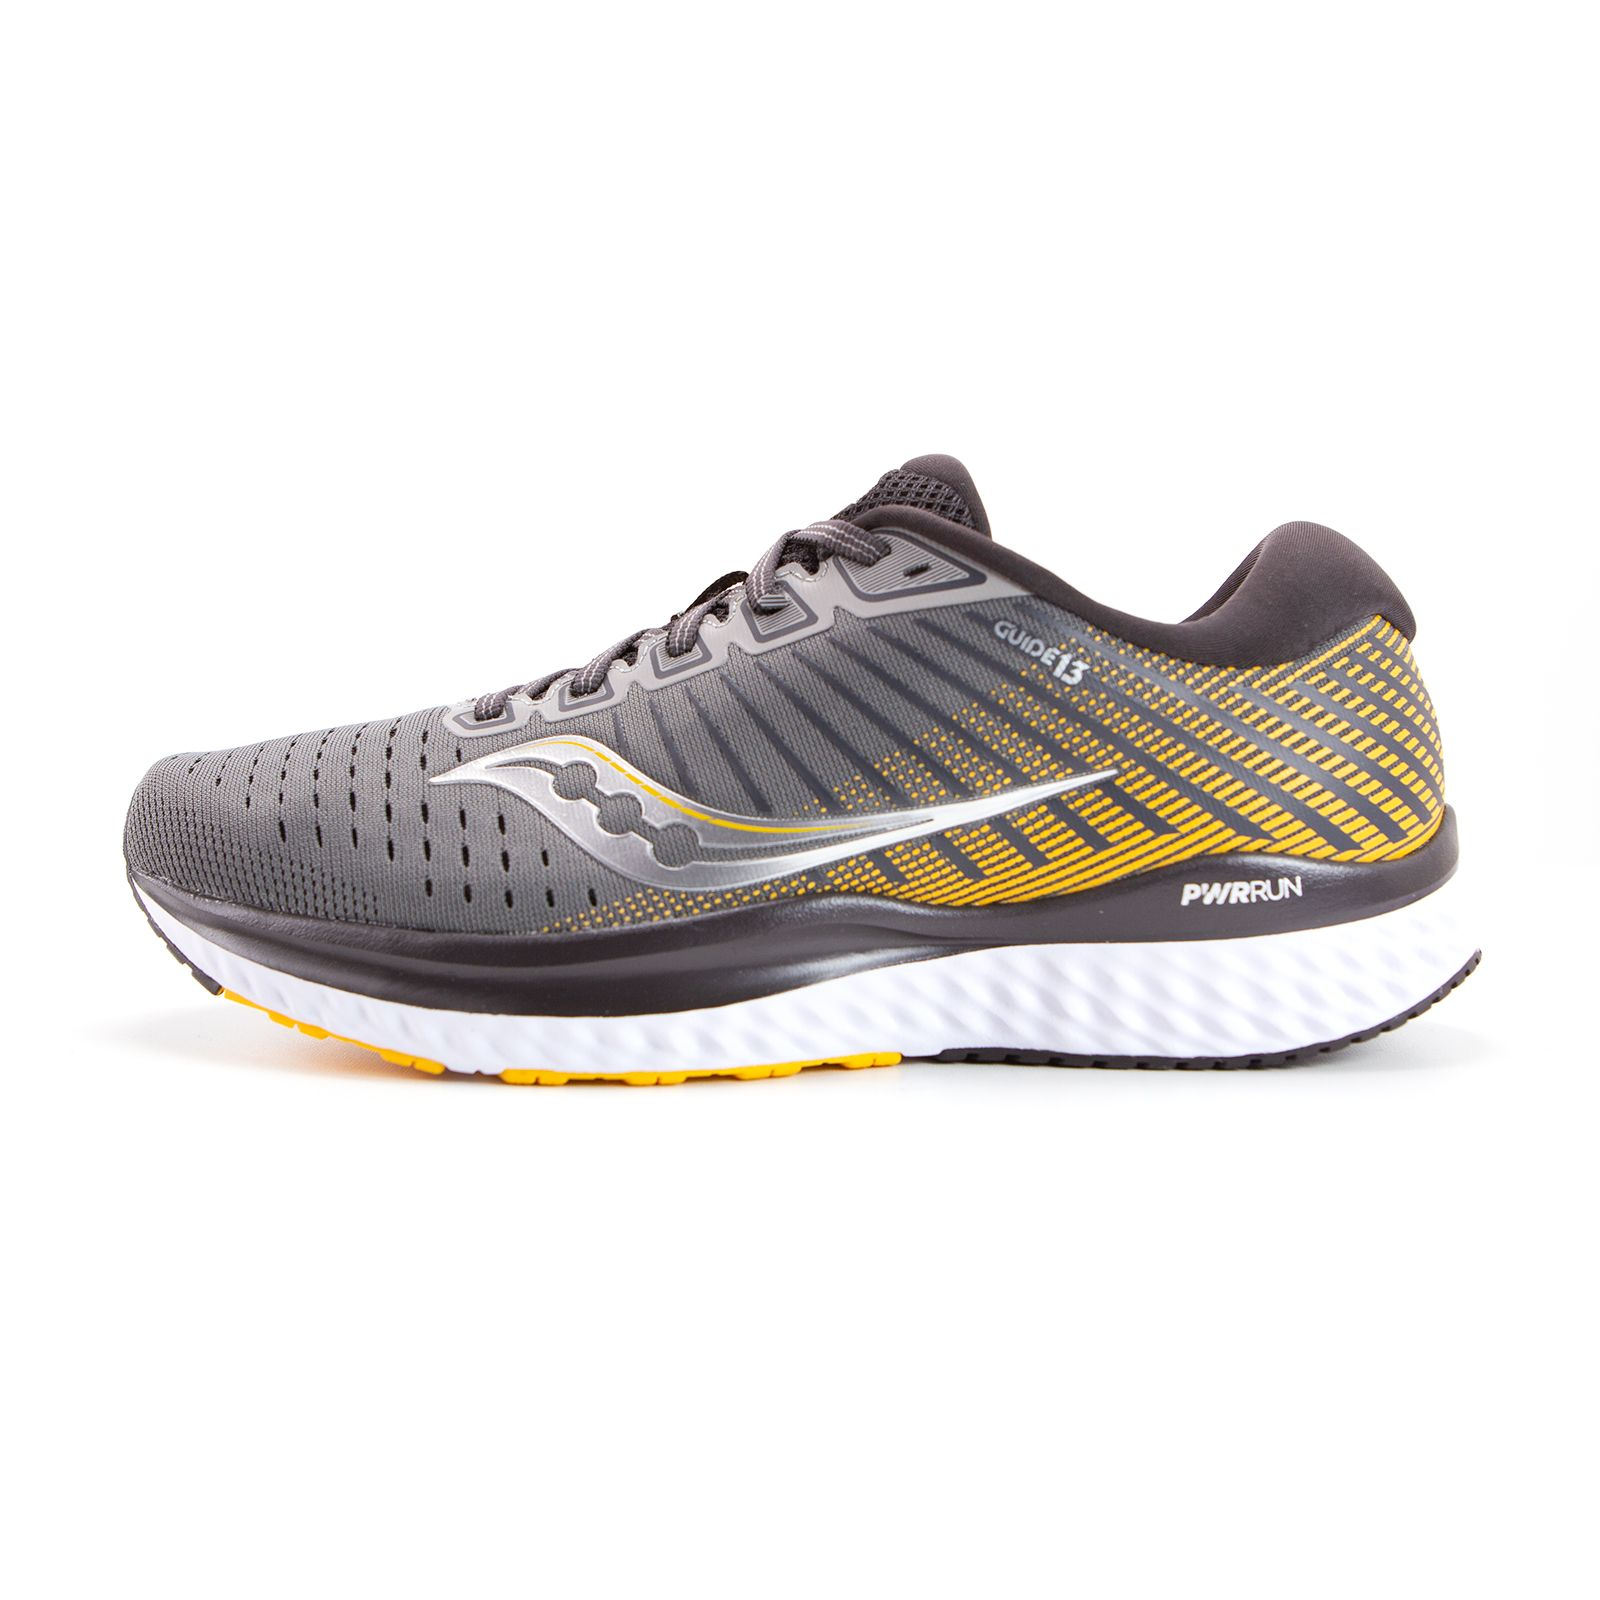 [Image: saucony%20guide%2013-541opx.jpg]